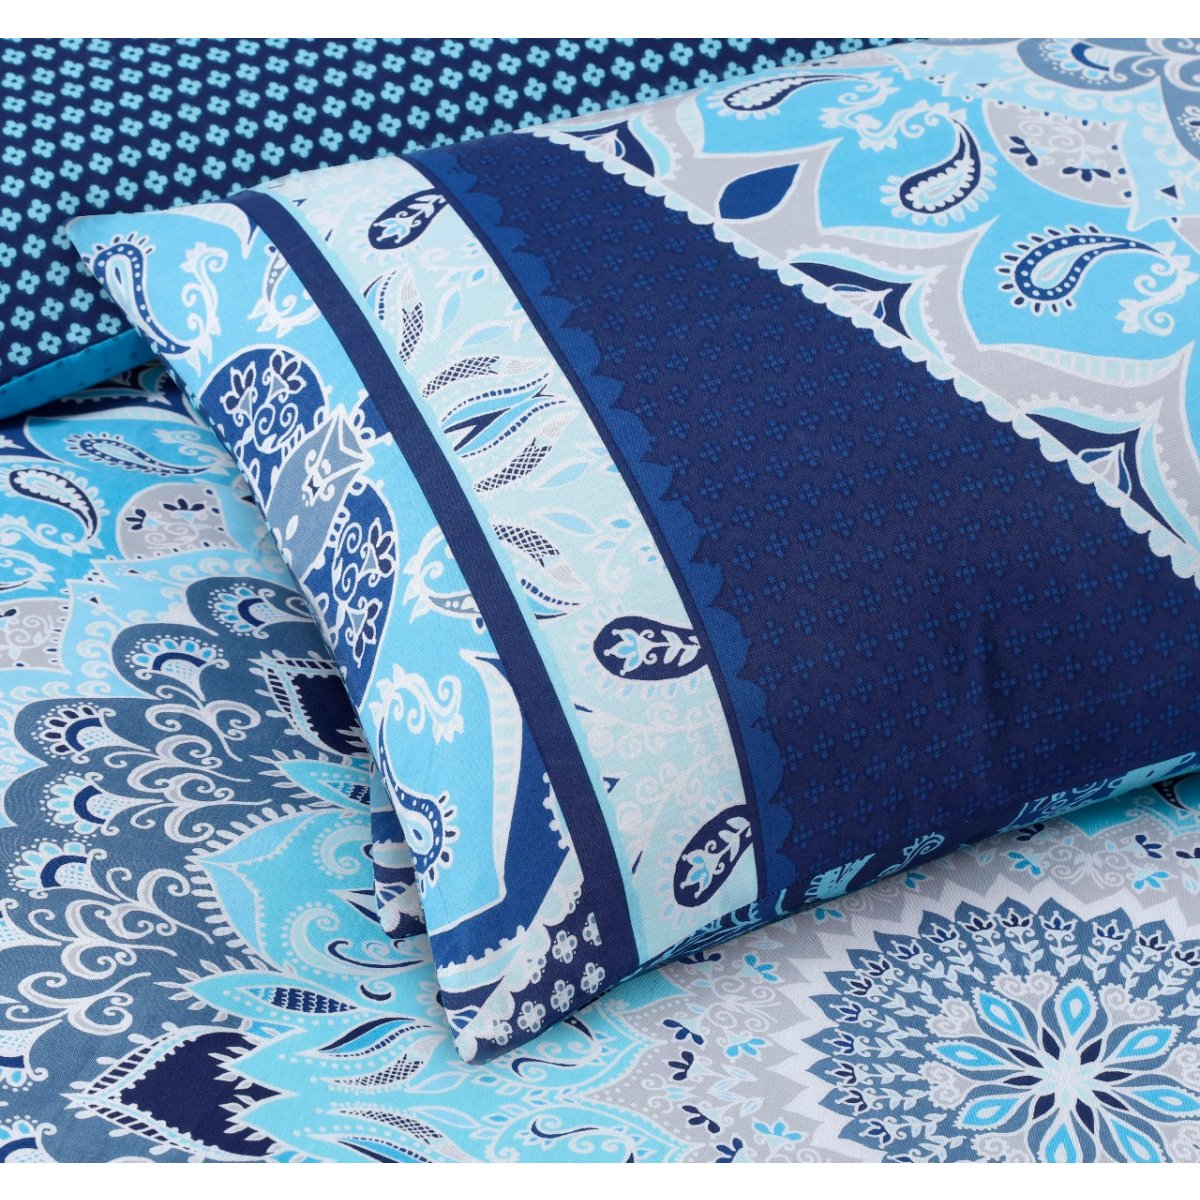 Paisley Mandala Blue Bedding - Reversible Duvet Cover and Pillowcase Set